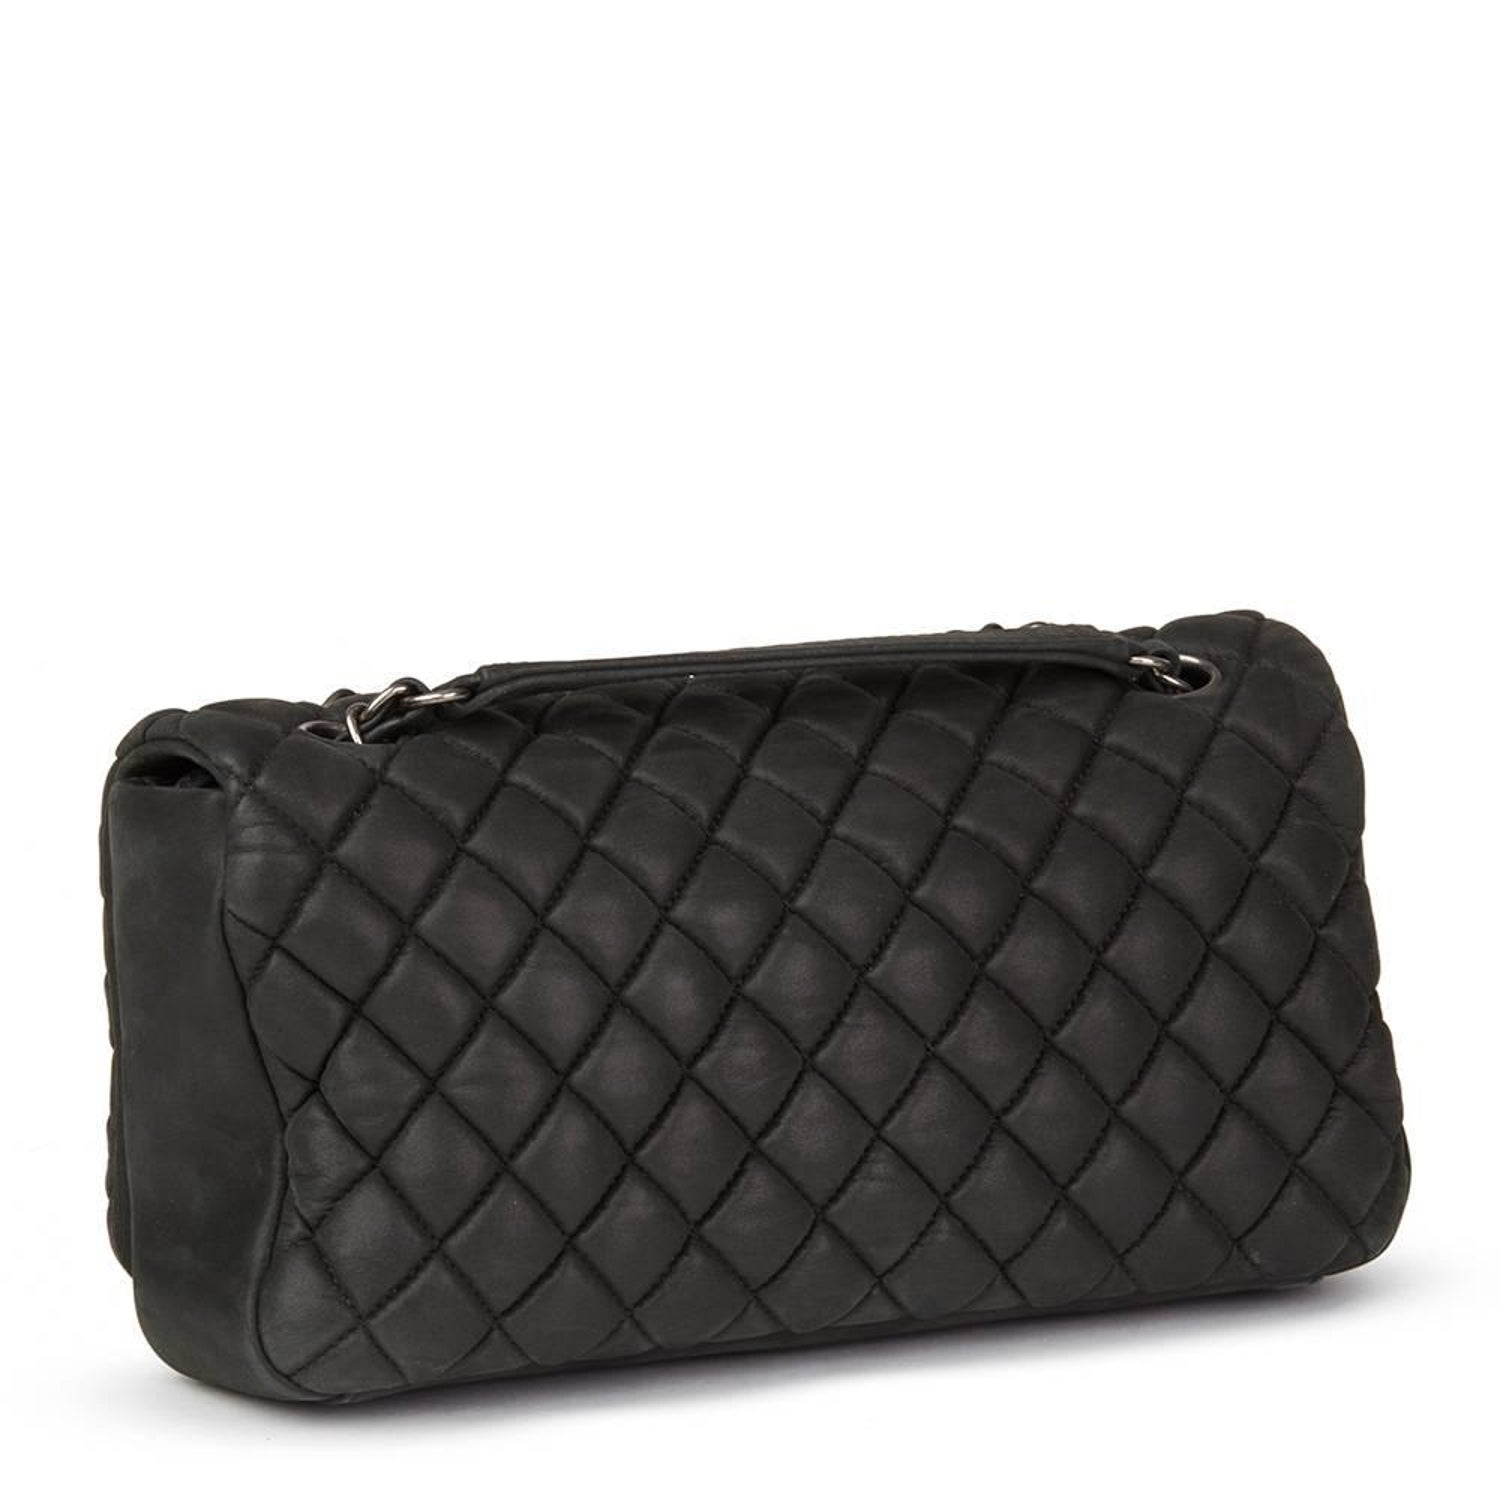 cac05e8b8f0c 2013 Chanel Dark Grey Bubble Quilted Velvet Calfskin Small Bubble Flap Bag  at 1stdibs